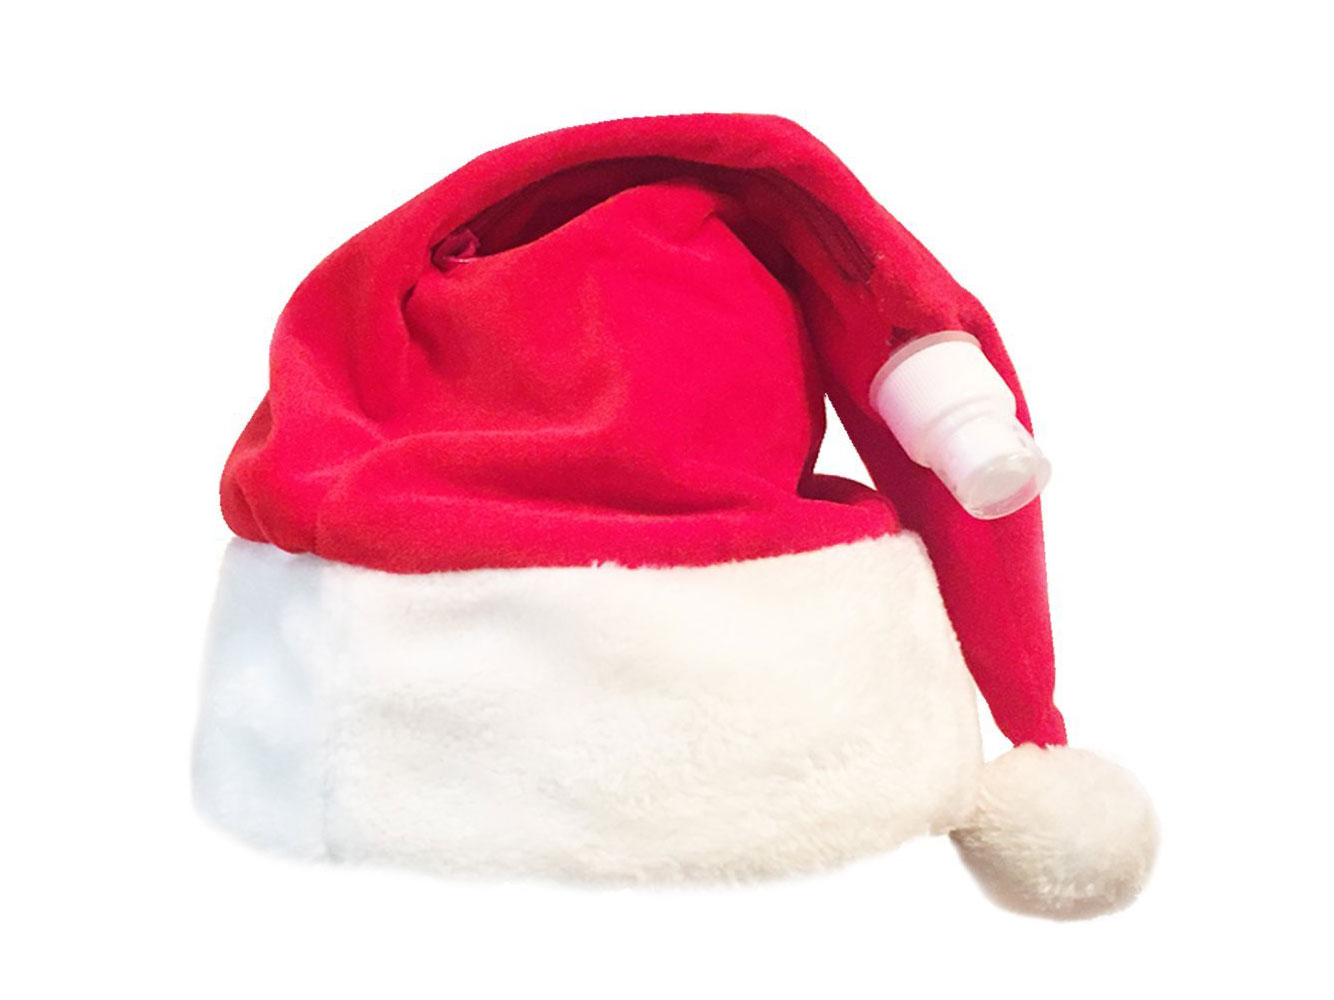 santa-hat-christmas-flasks-FT-BLOG1217.jpg